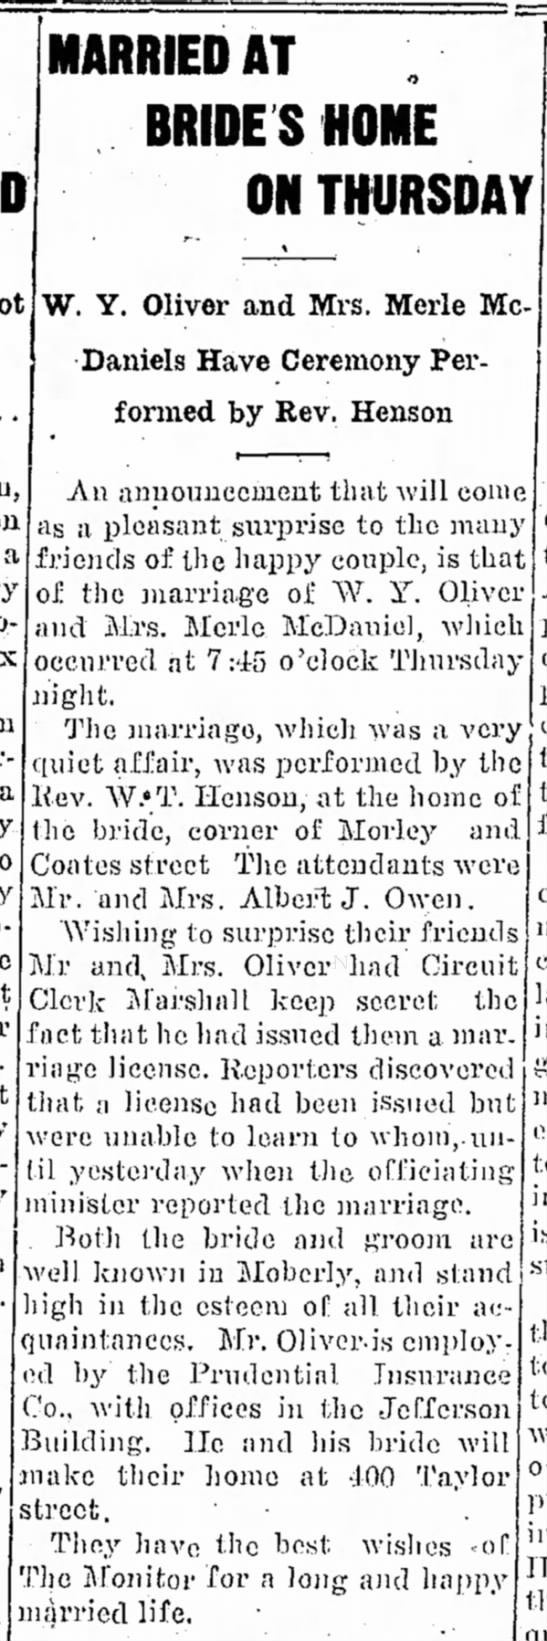 Merle McDaniel and WY Oliver marriage - Moberly Weekly Monitor, 8 Jun 1915, p1